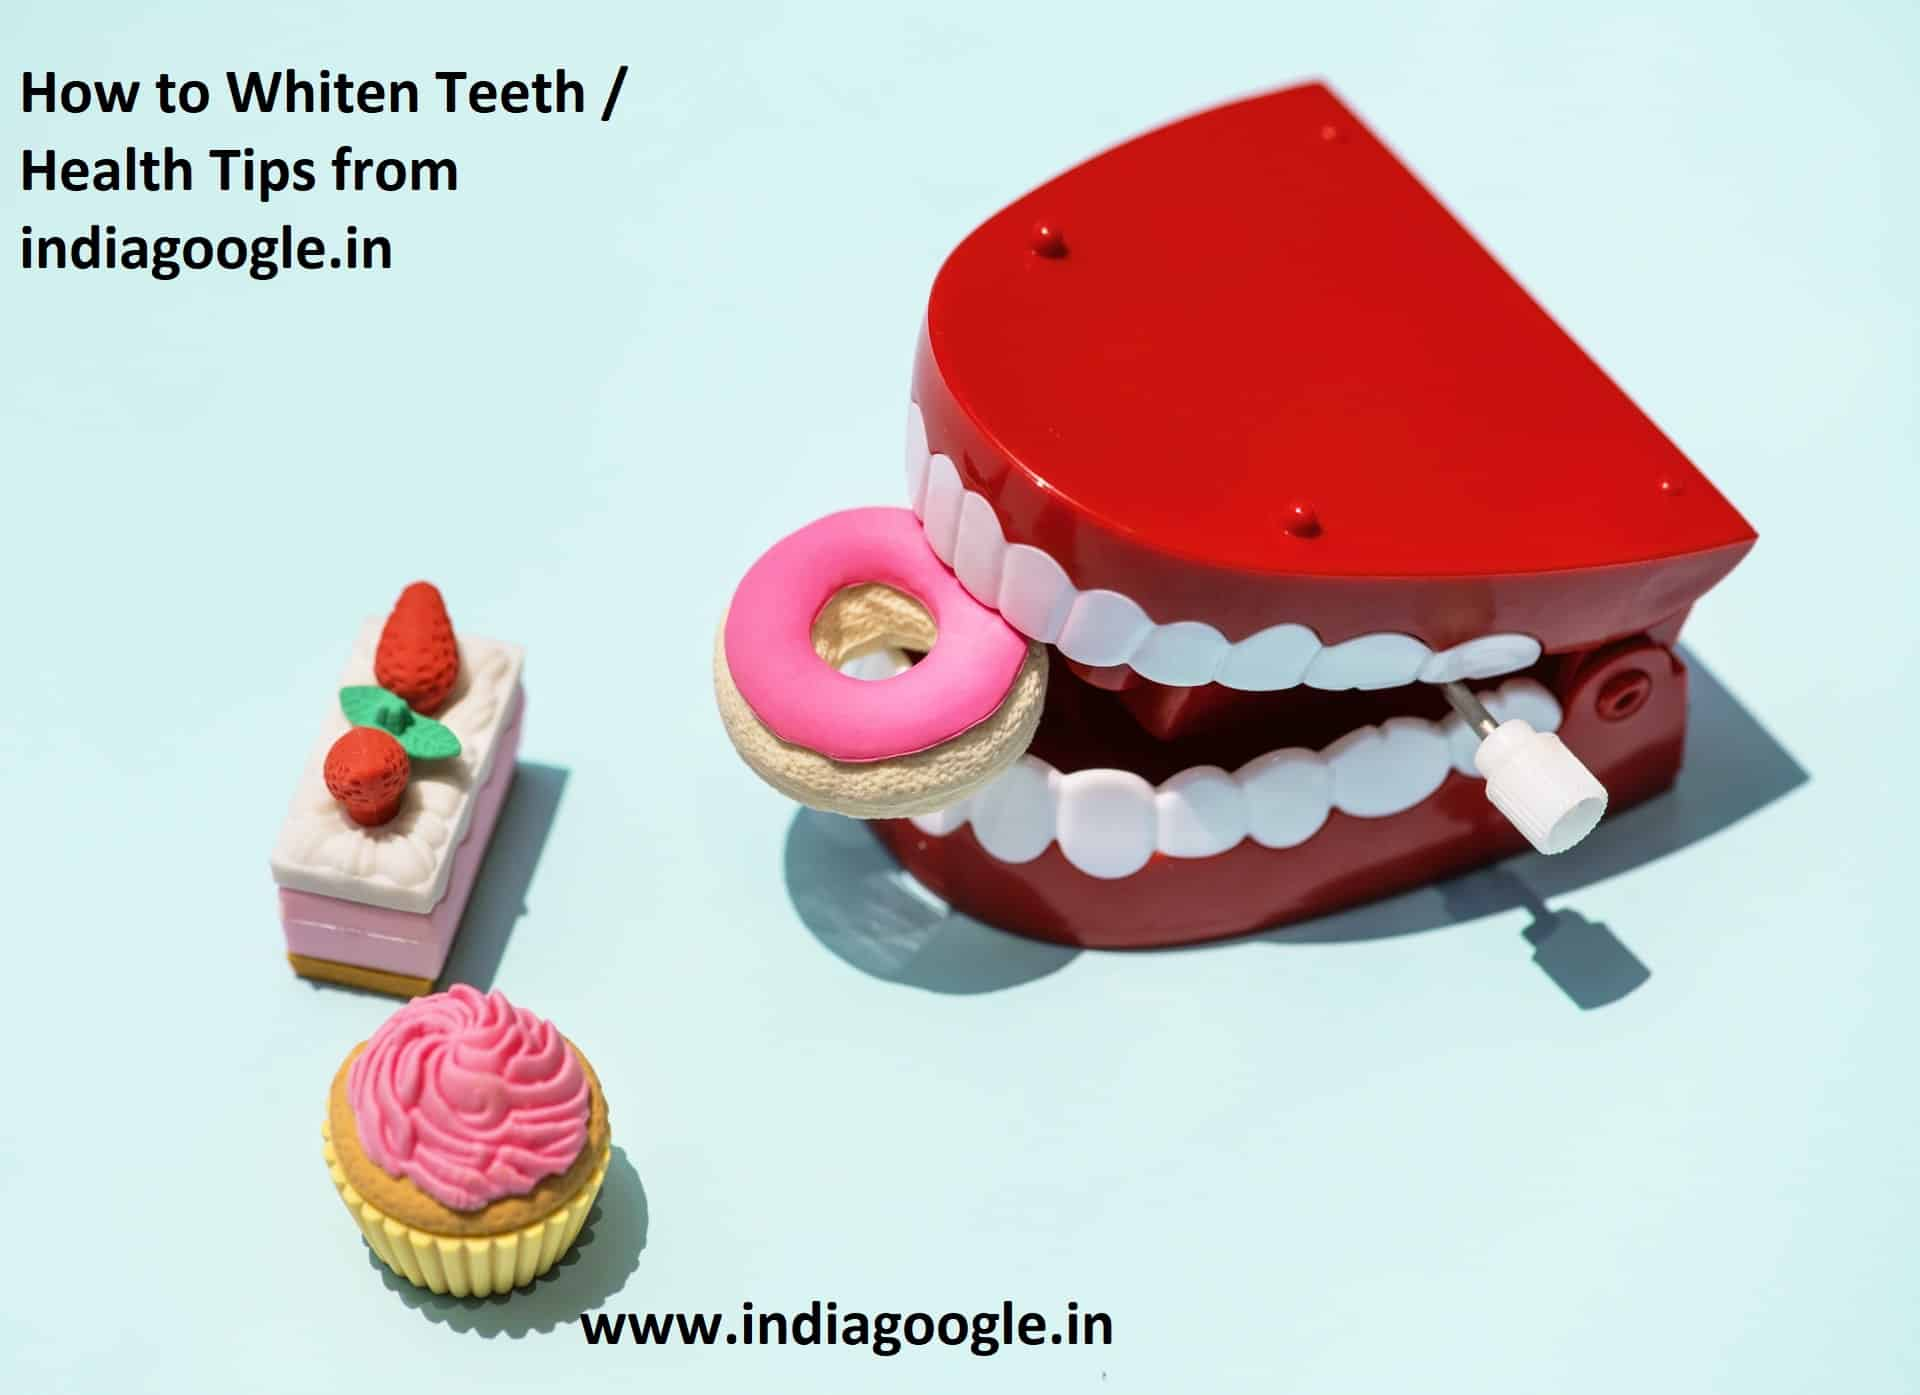 how to whiten teeth | Health tips